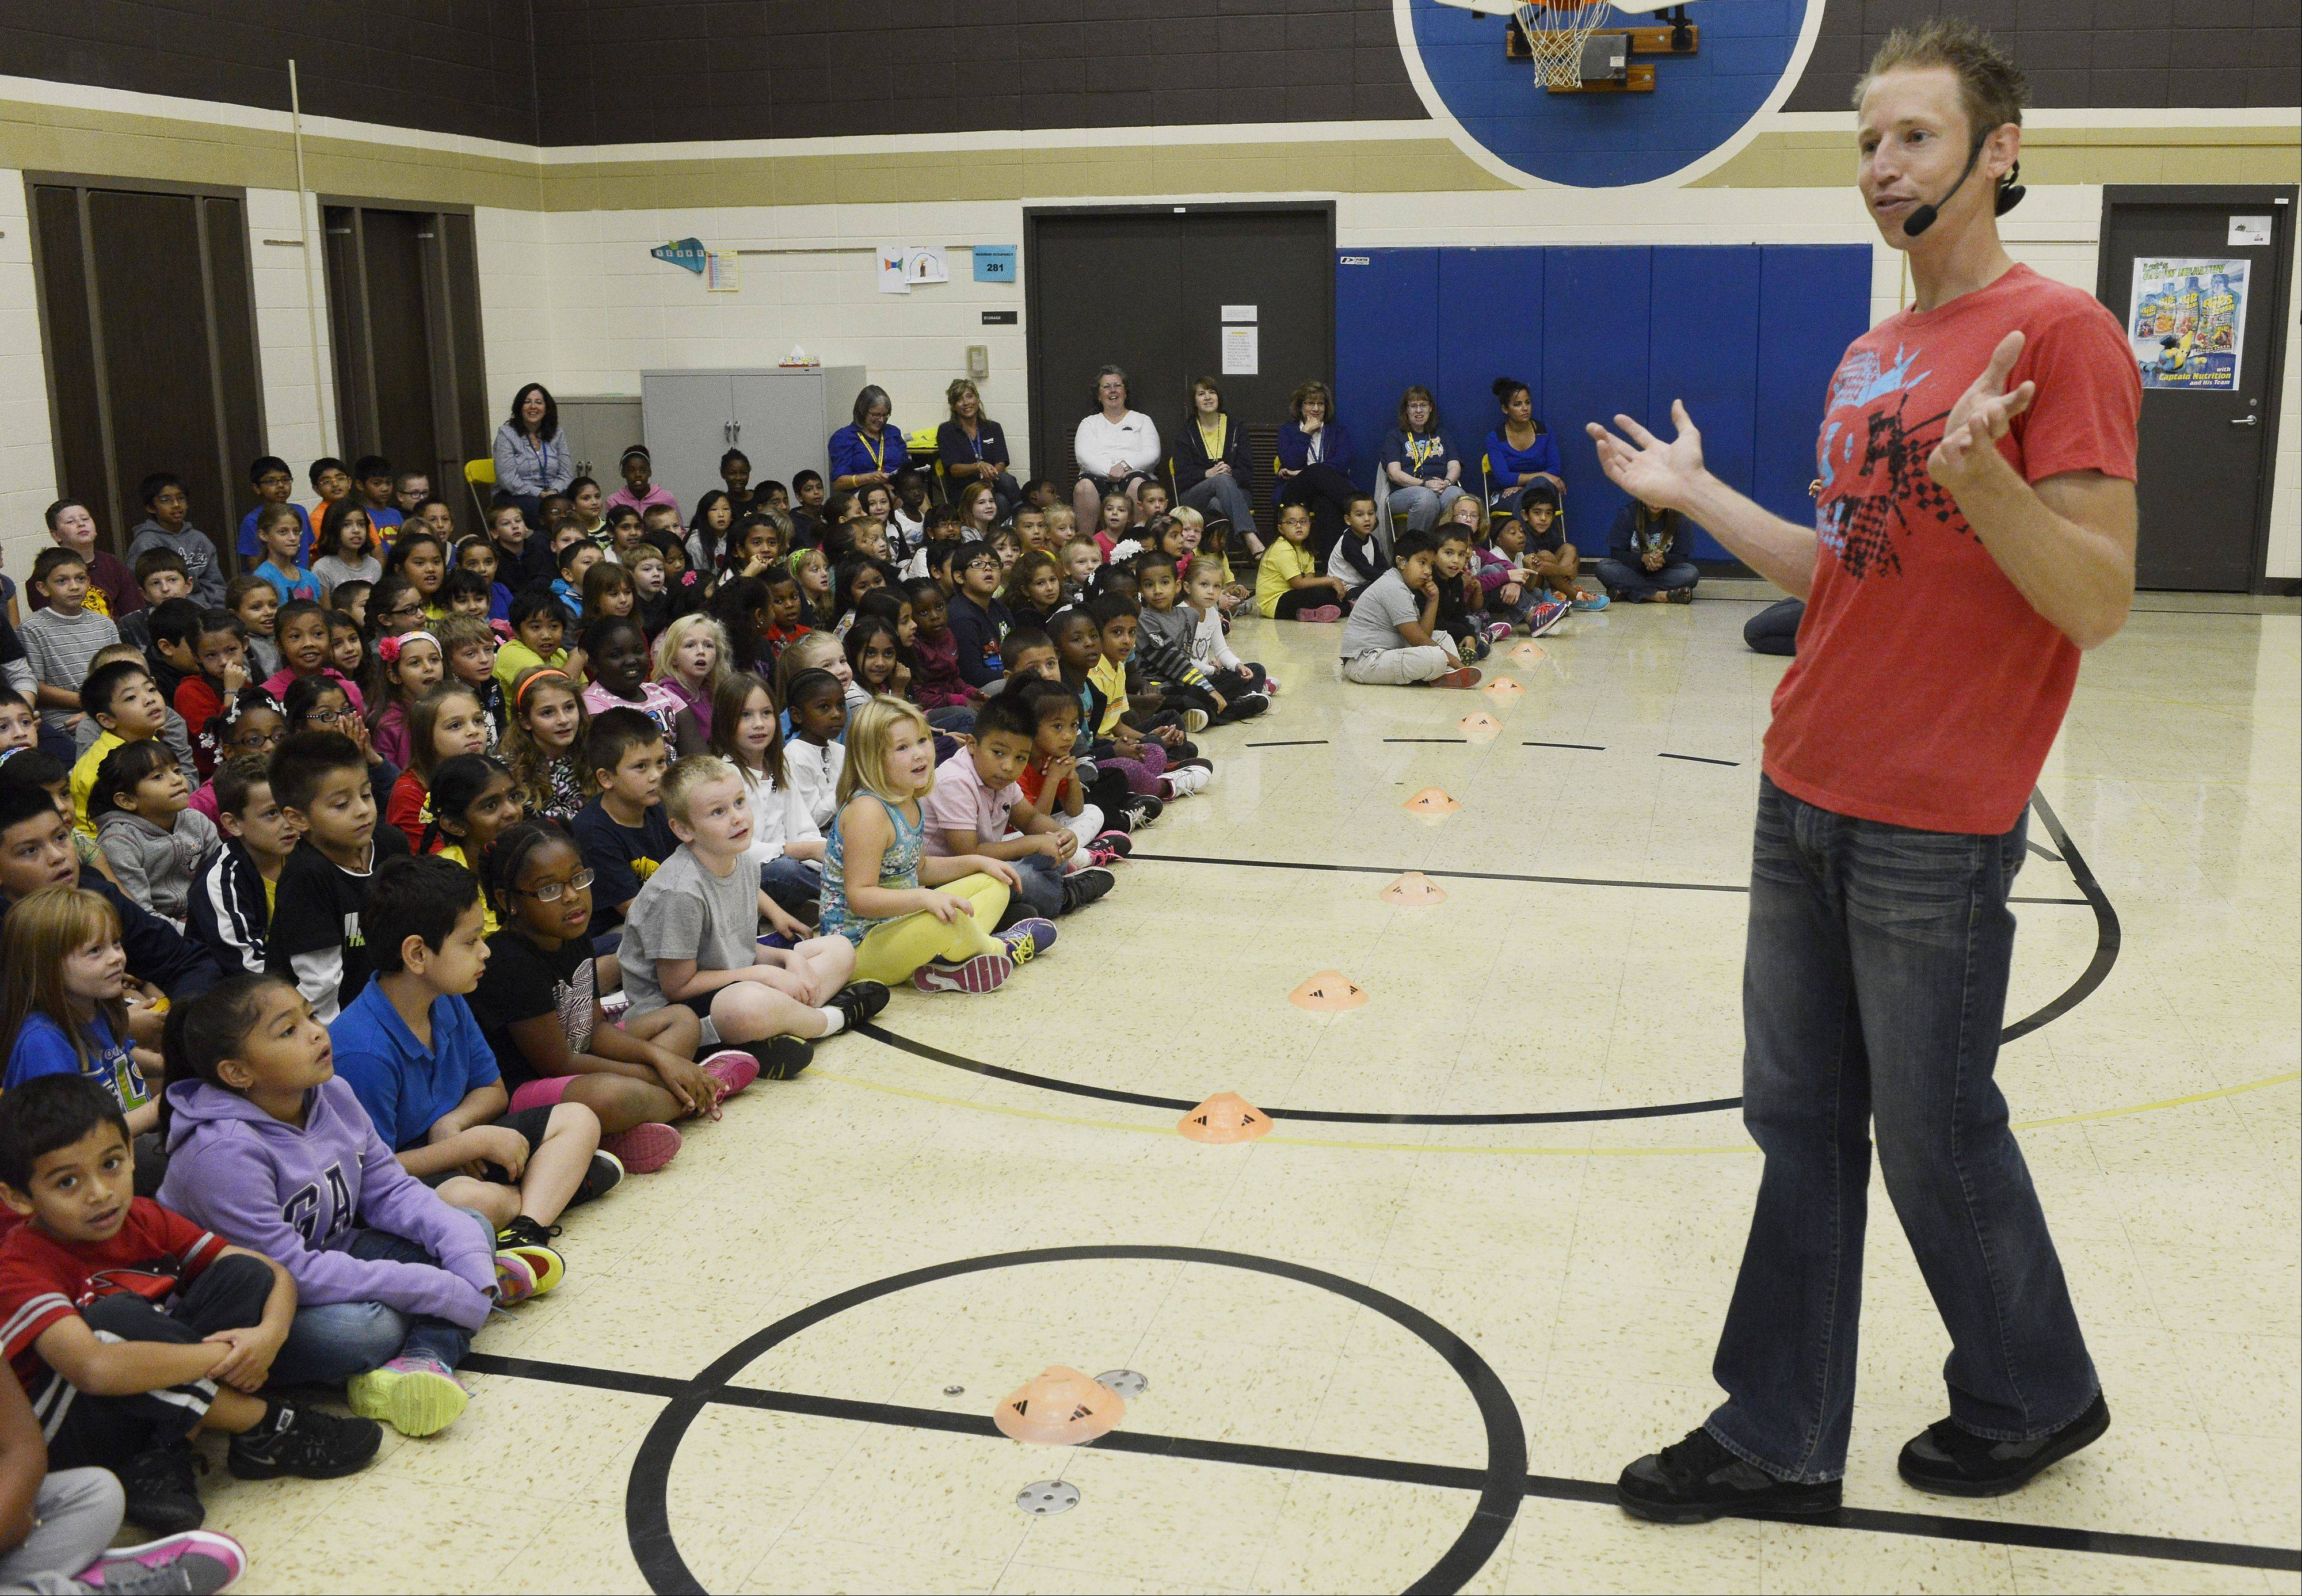 JOE LEWNARD/jlewnard@dailyherald.comDuring a break between BMX bike stunts, America's Got Talent semifinalist Matt Wilhelm talks to students at Horizon Elementary School in Hanover Park about bullying, perseverance, bike safety and character.